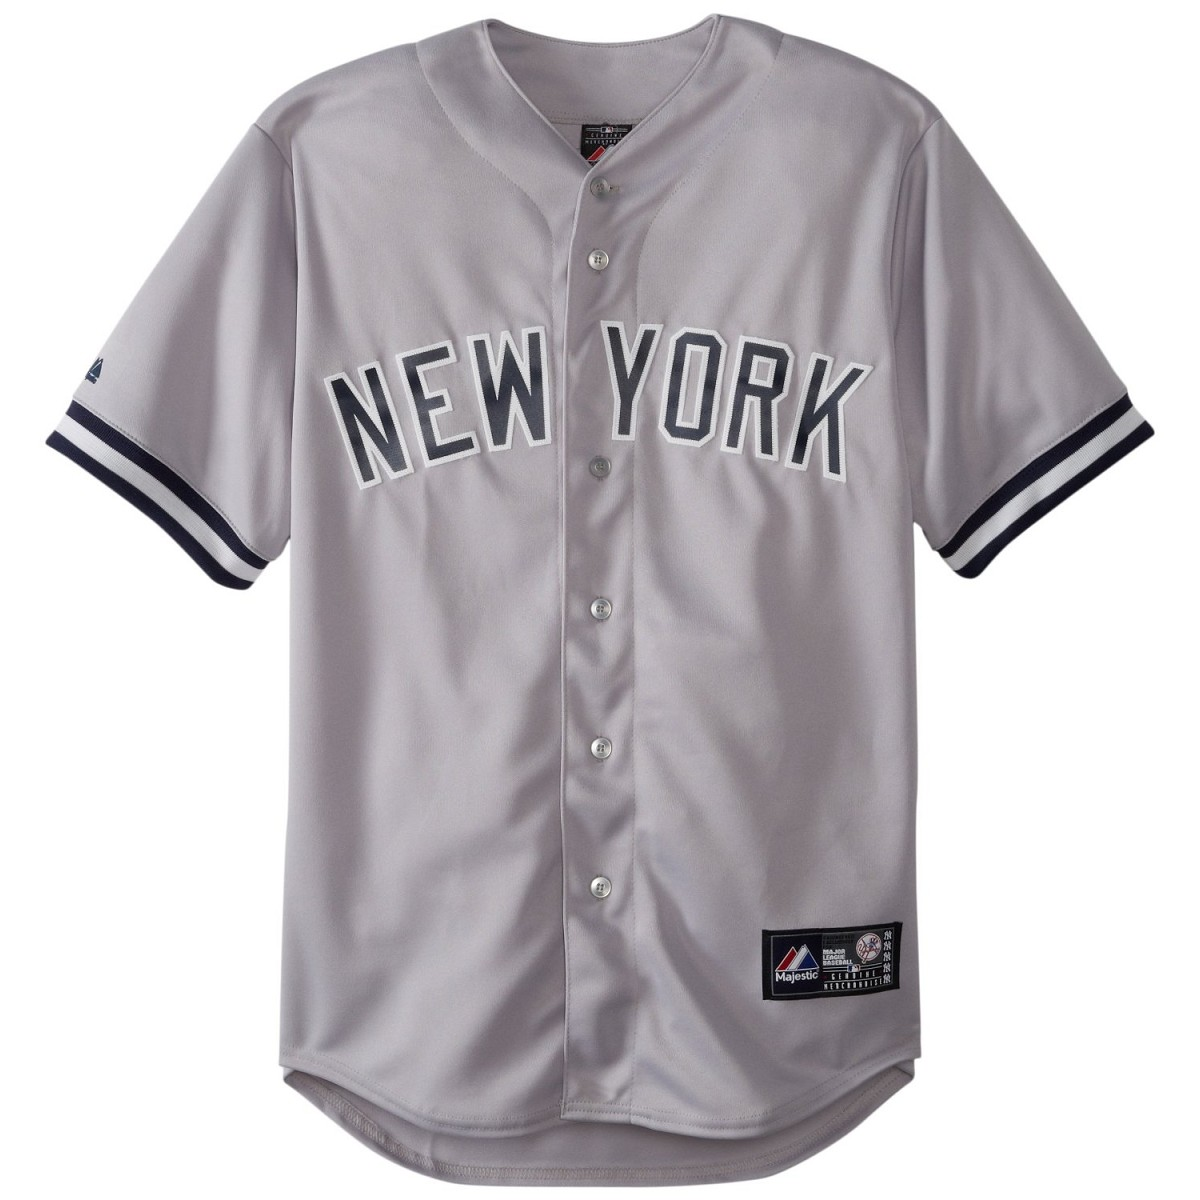 New York Giants Home Jersey